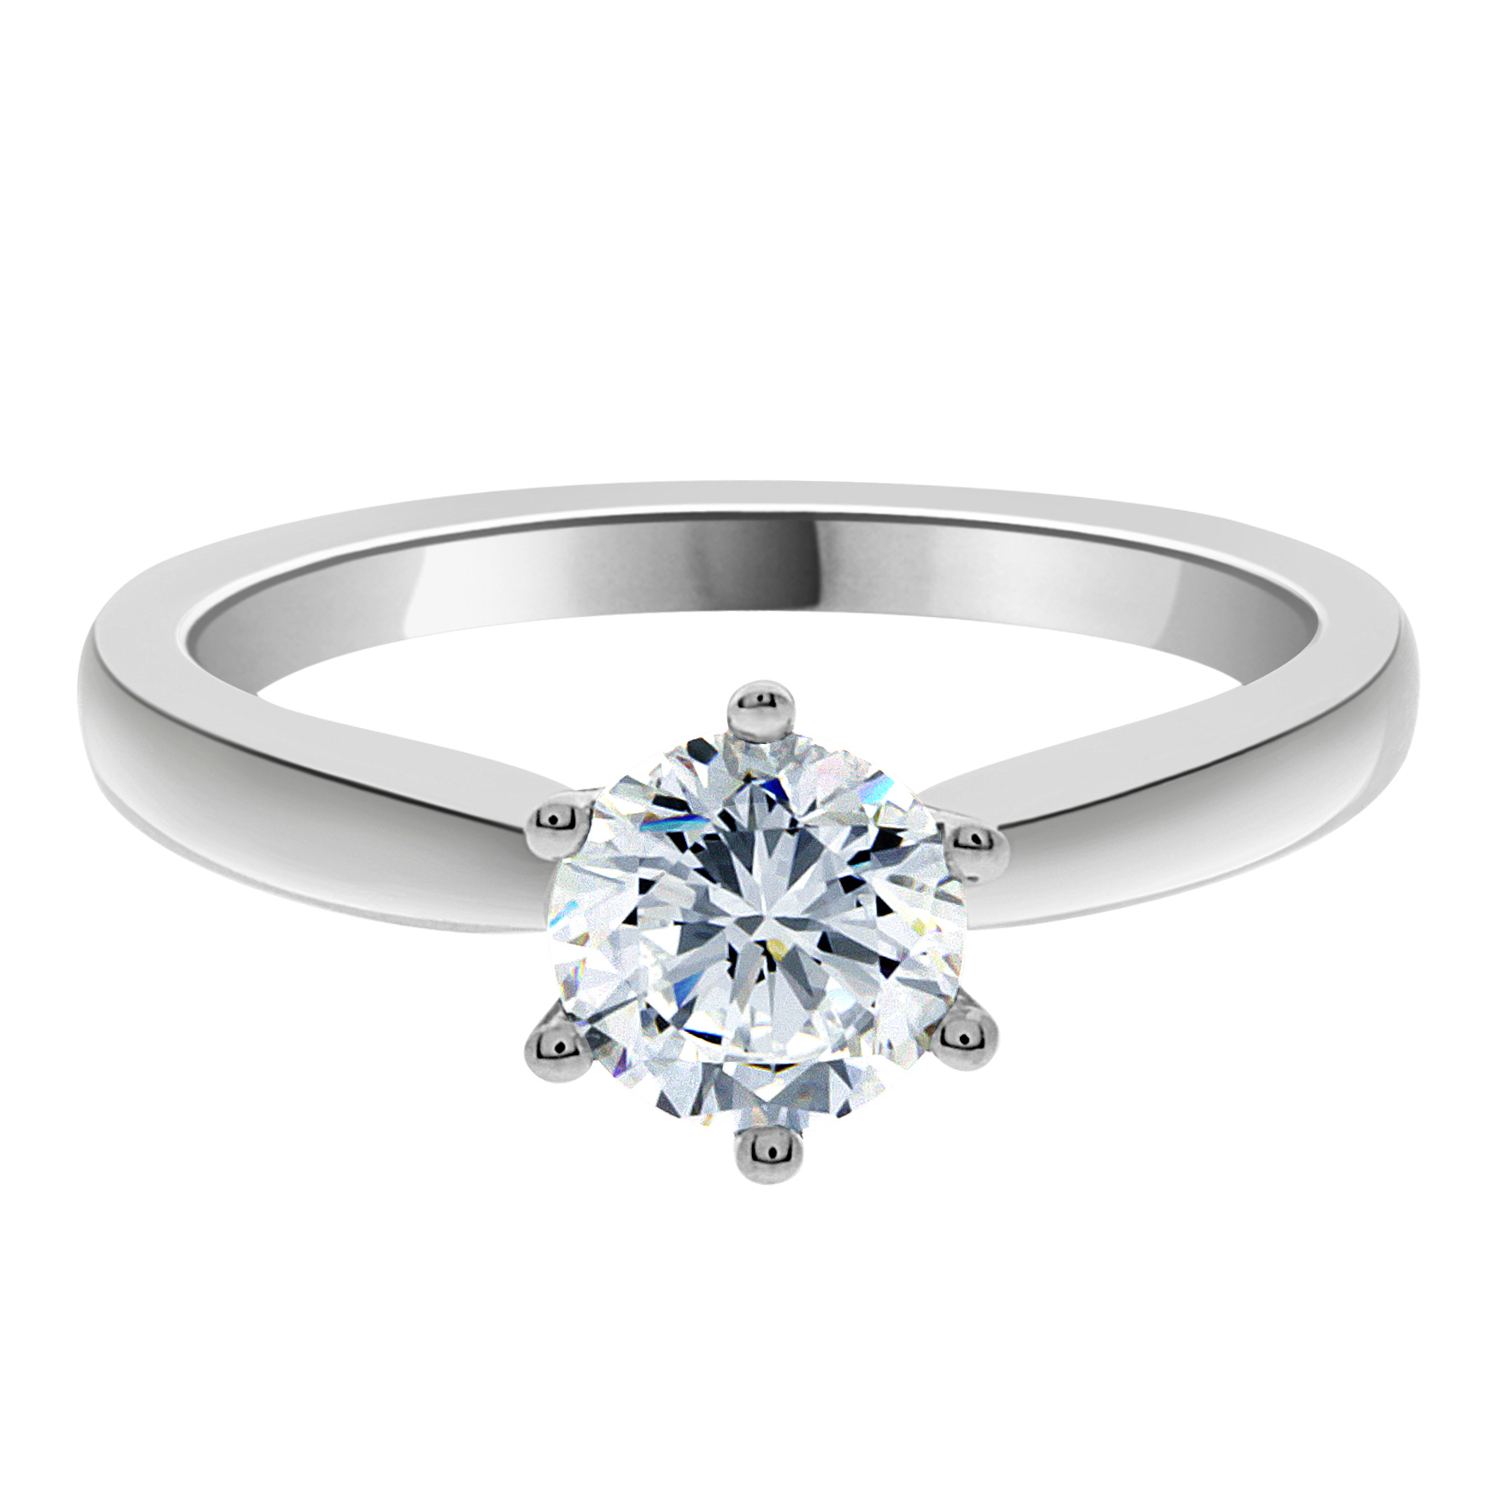 ring jerezwine setting diamond in tw ct jewelry settings platinum jewellery engagement